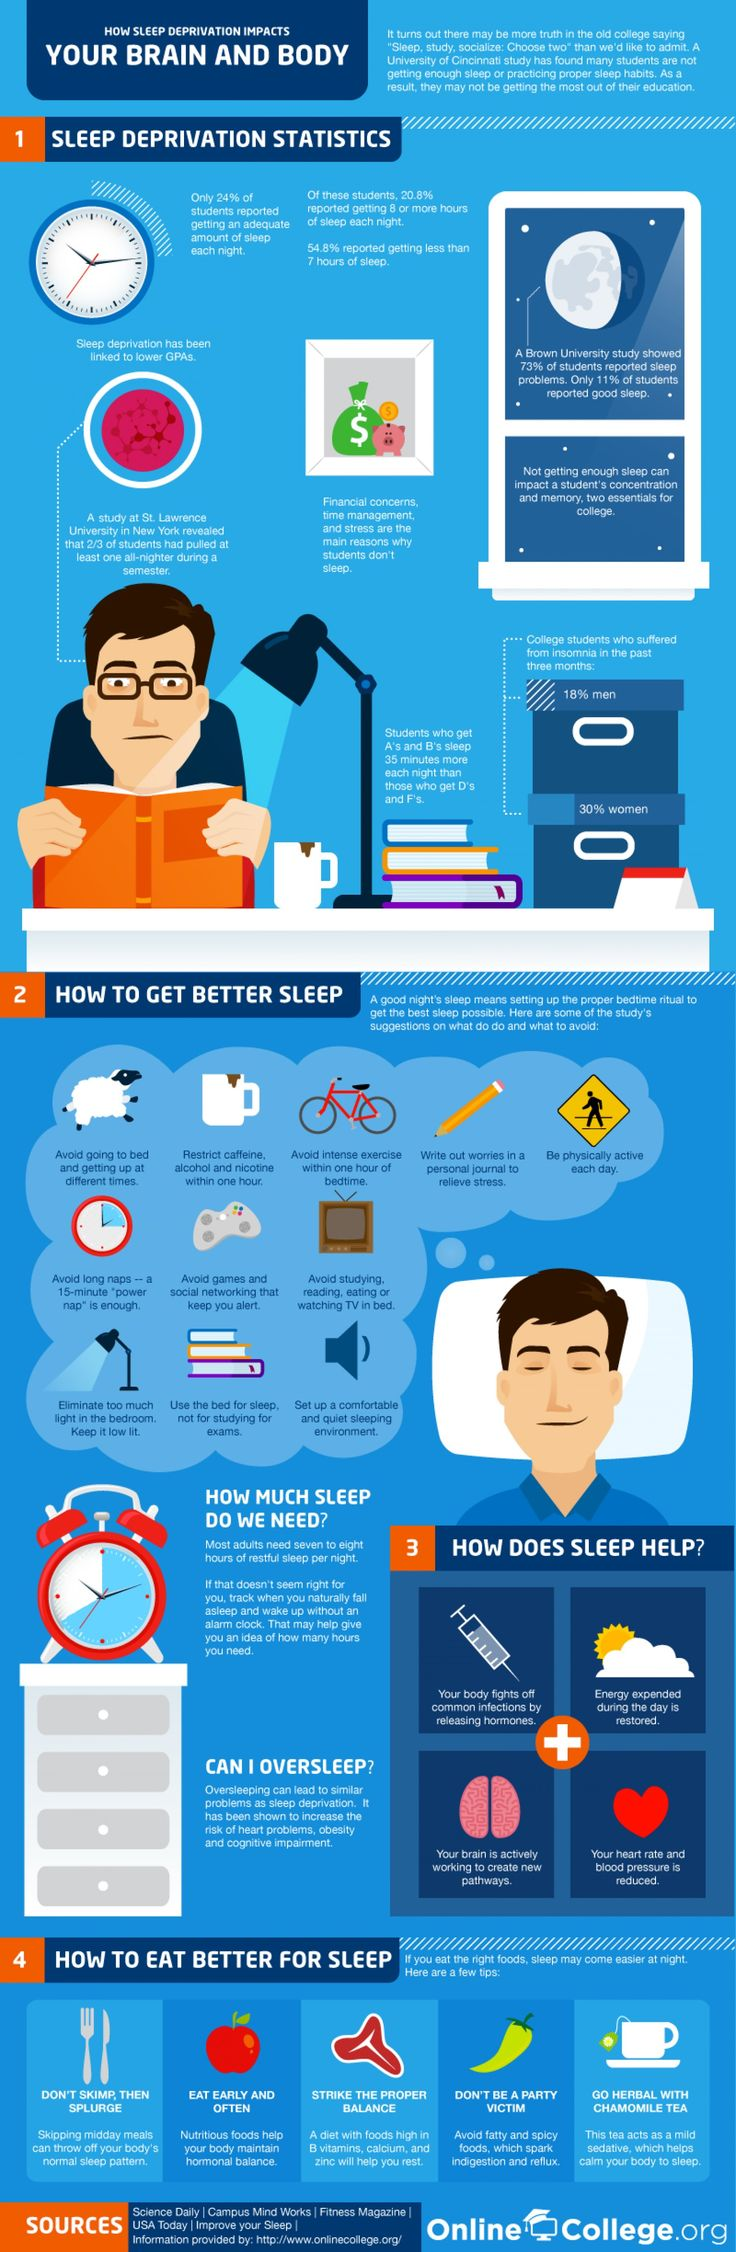 How sleep affects your body. Scientists have discoverved how to reset your circadian rhythm #MasterManhood #MasterSleep